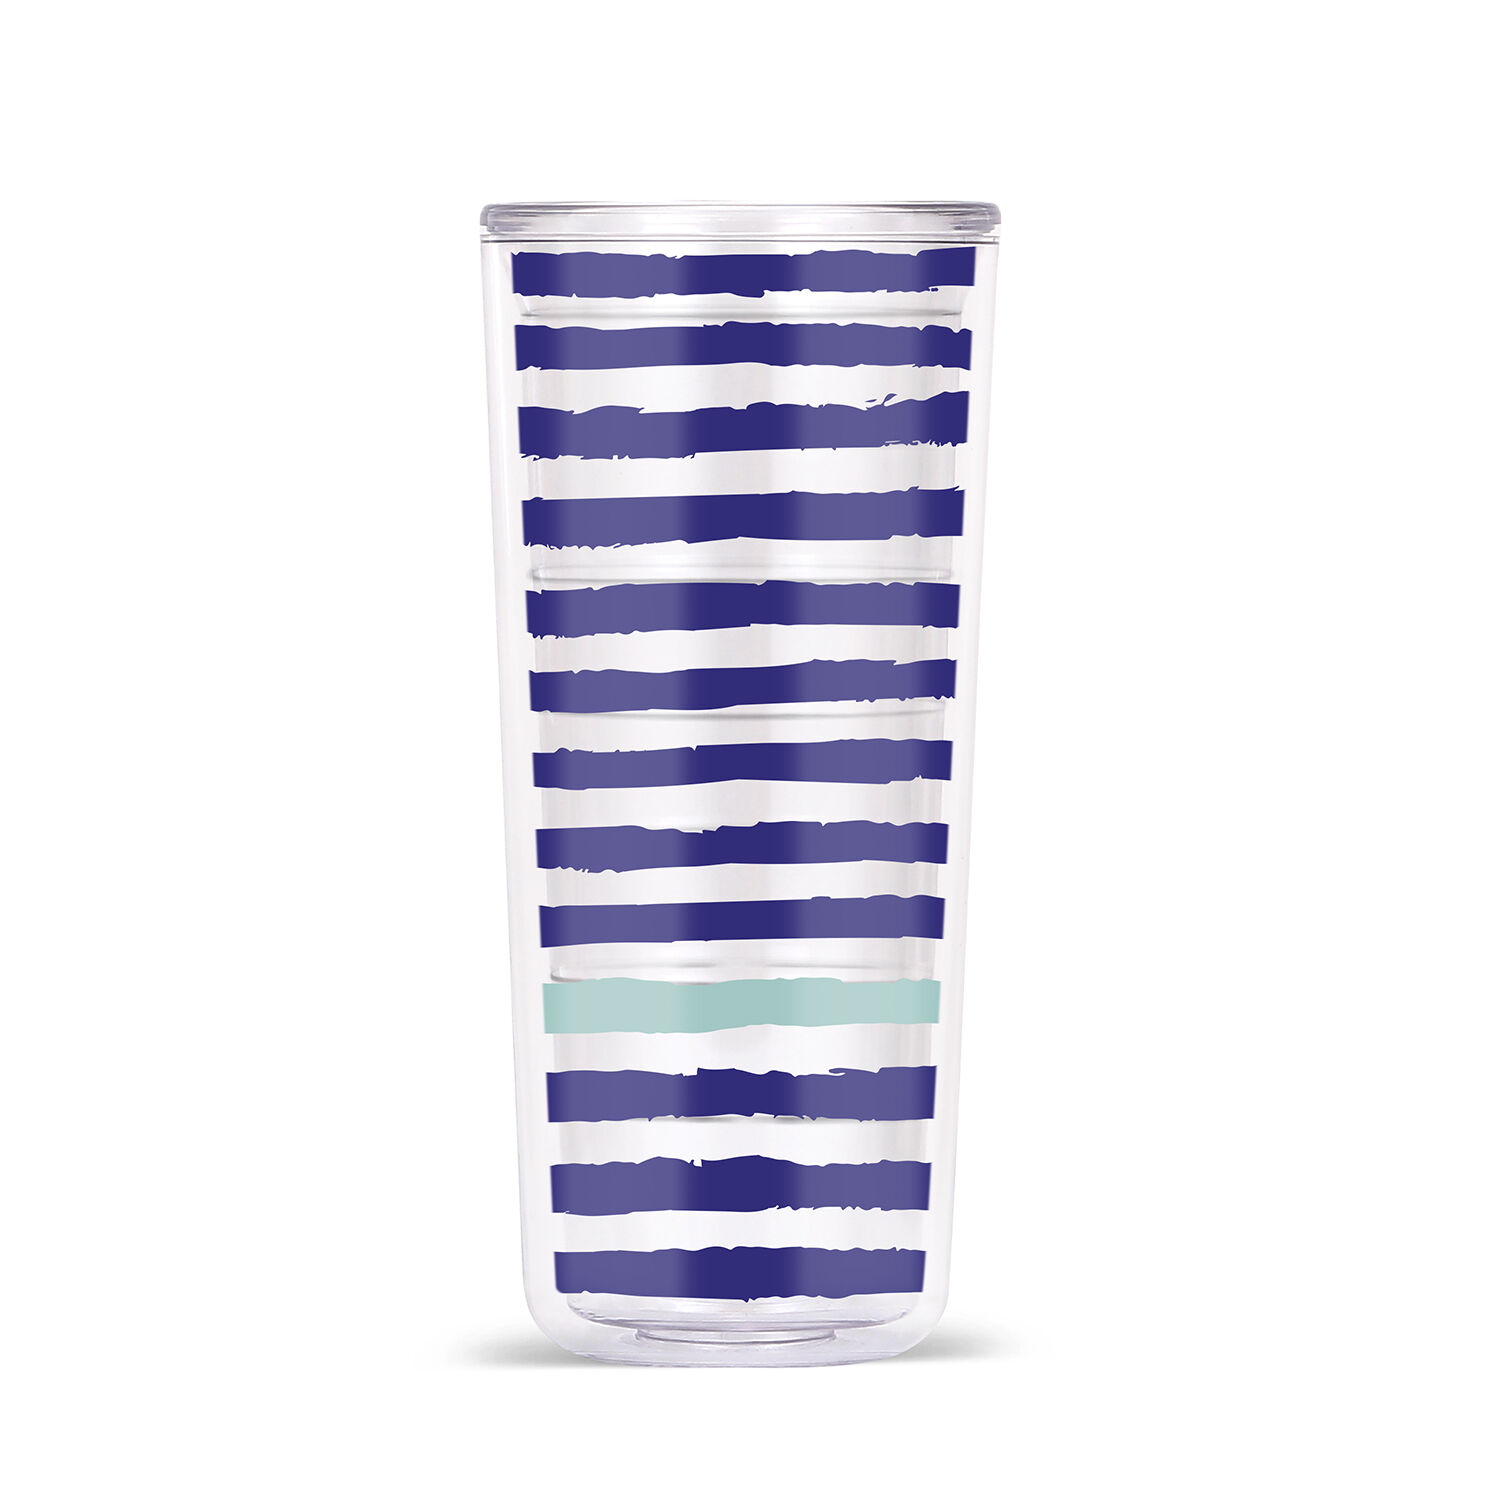 ThermoServe 18oz Double Wall Tritan Tumbler, Set of 4 (Multiple colors Patterns)